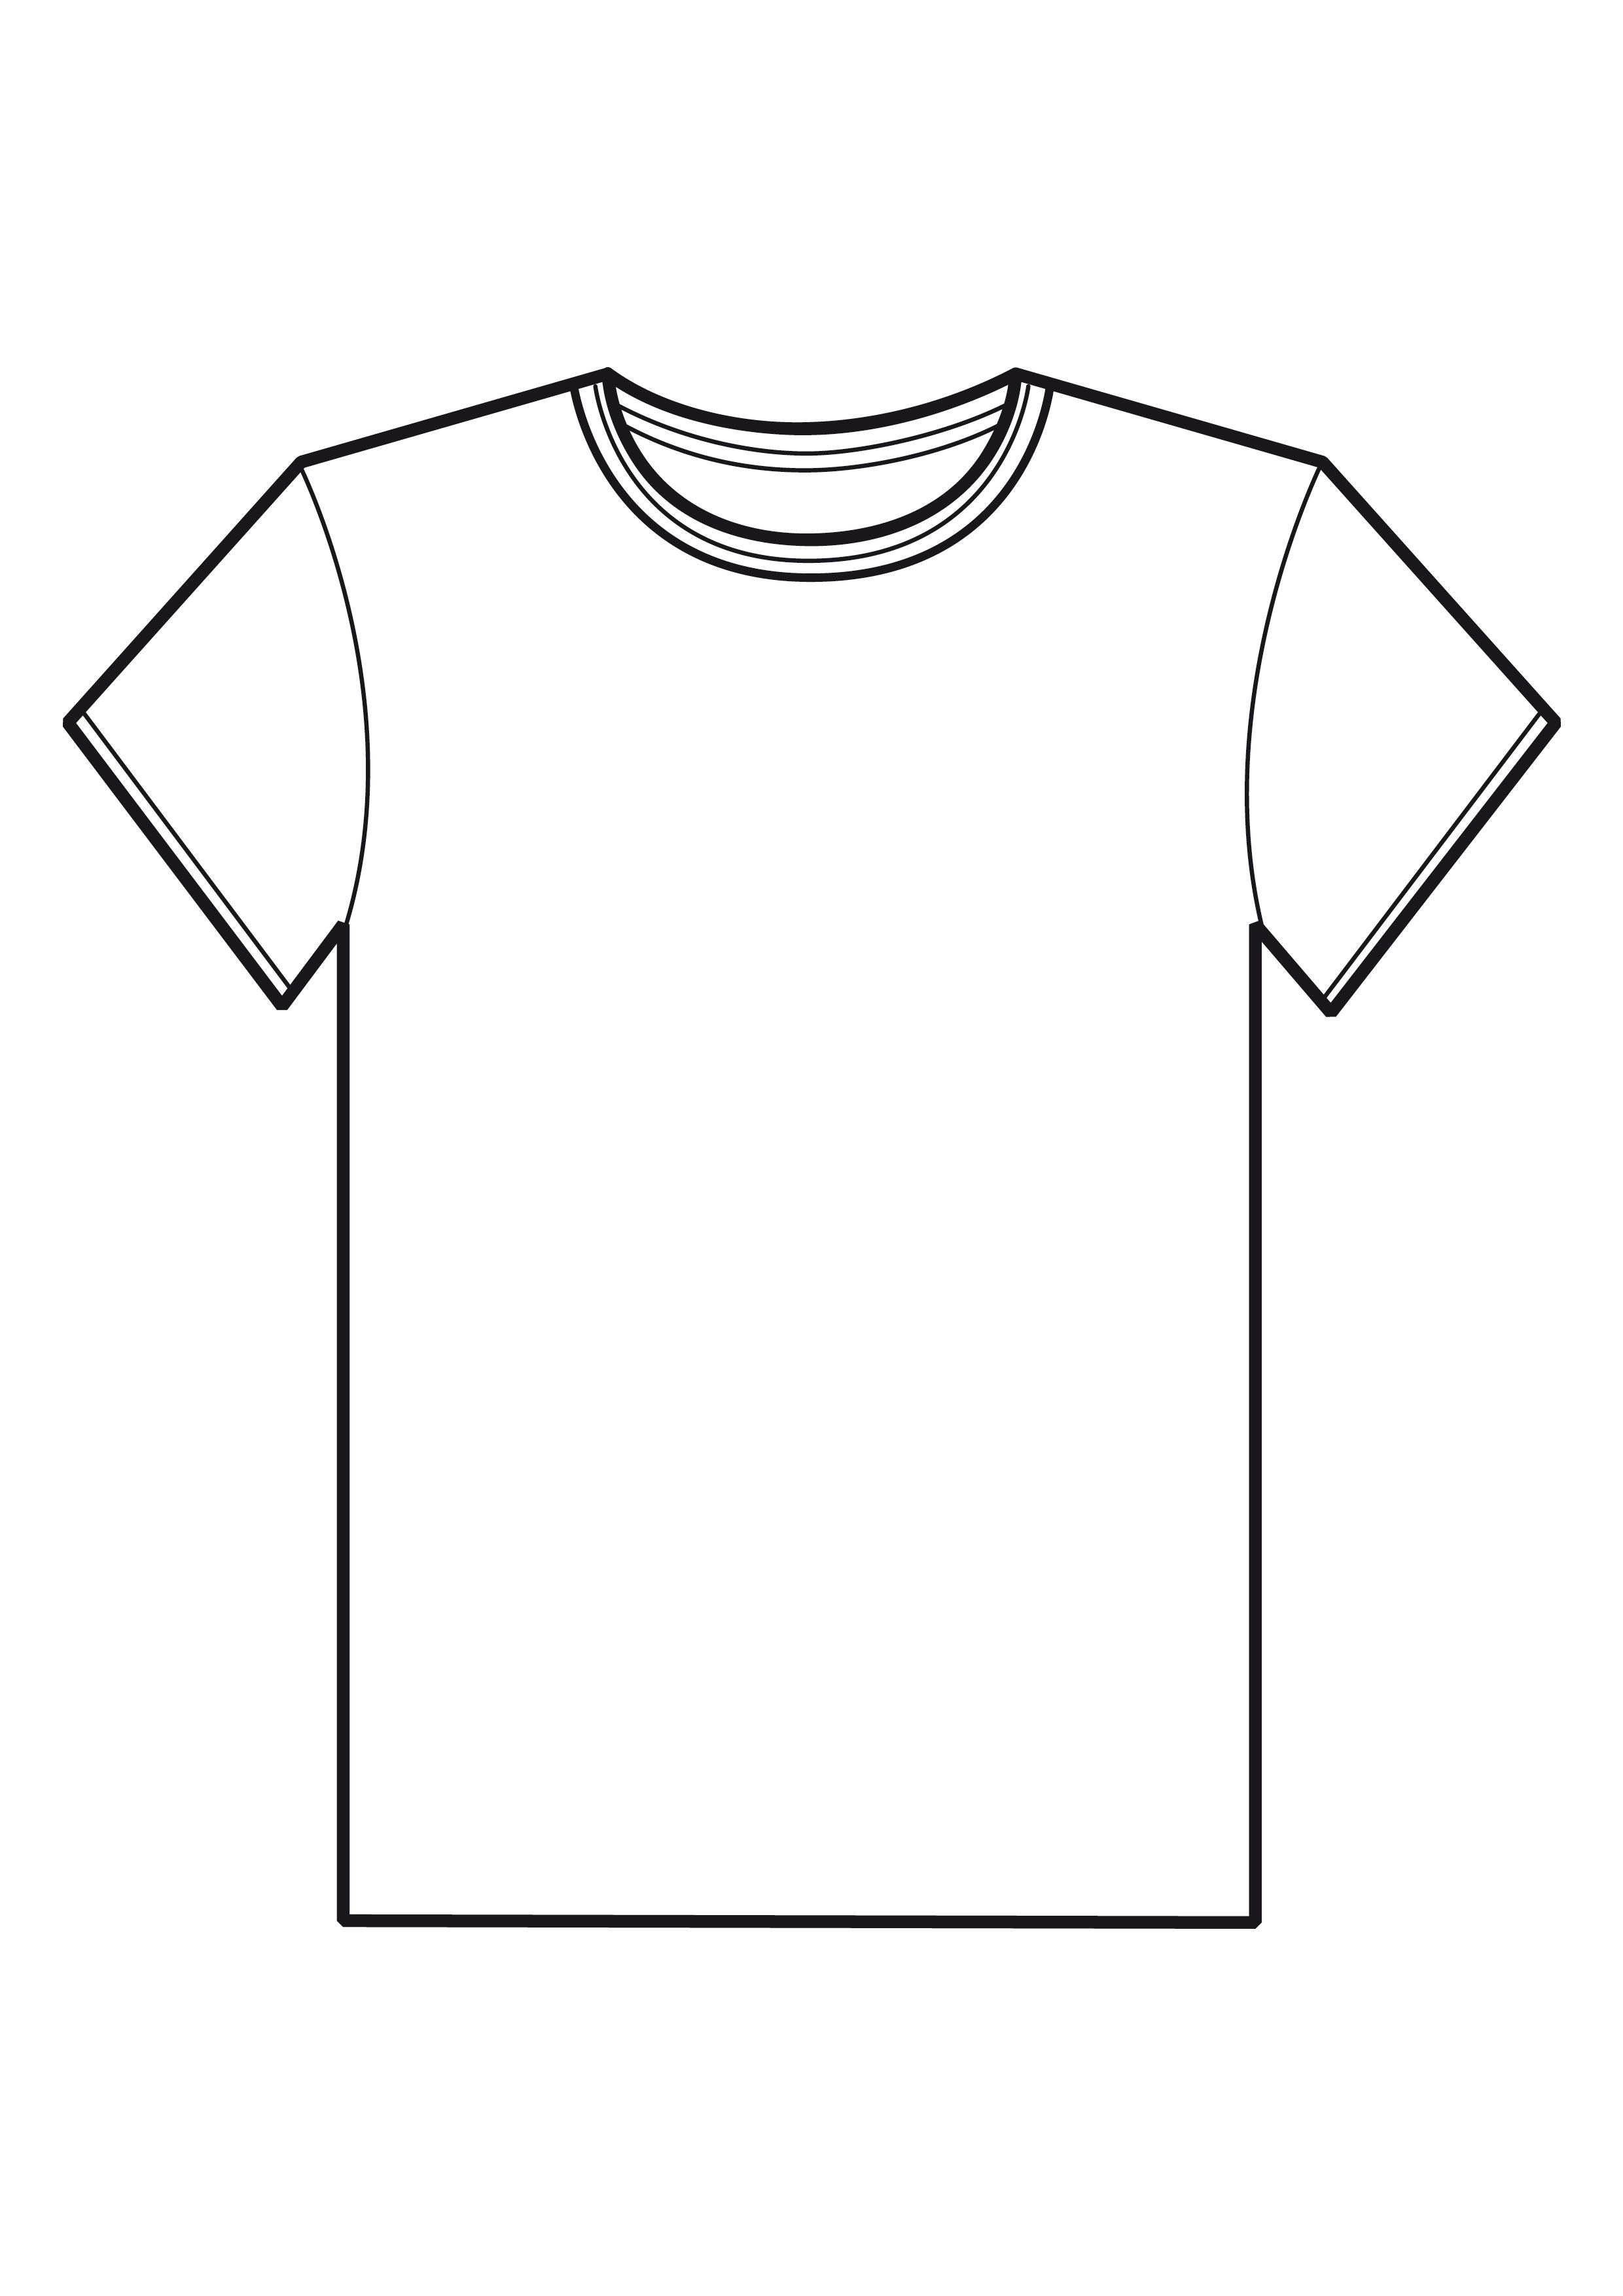 blank t shirt template for colouring clipart best. Black Bedroom Furniture Sets. Home Design Ideas